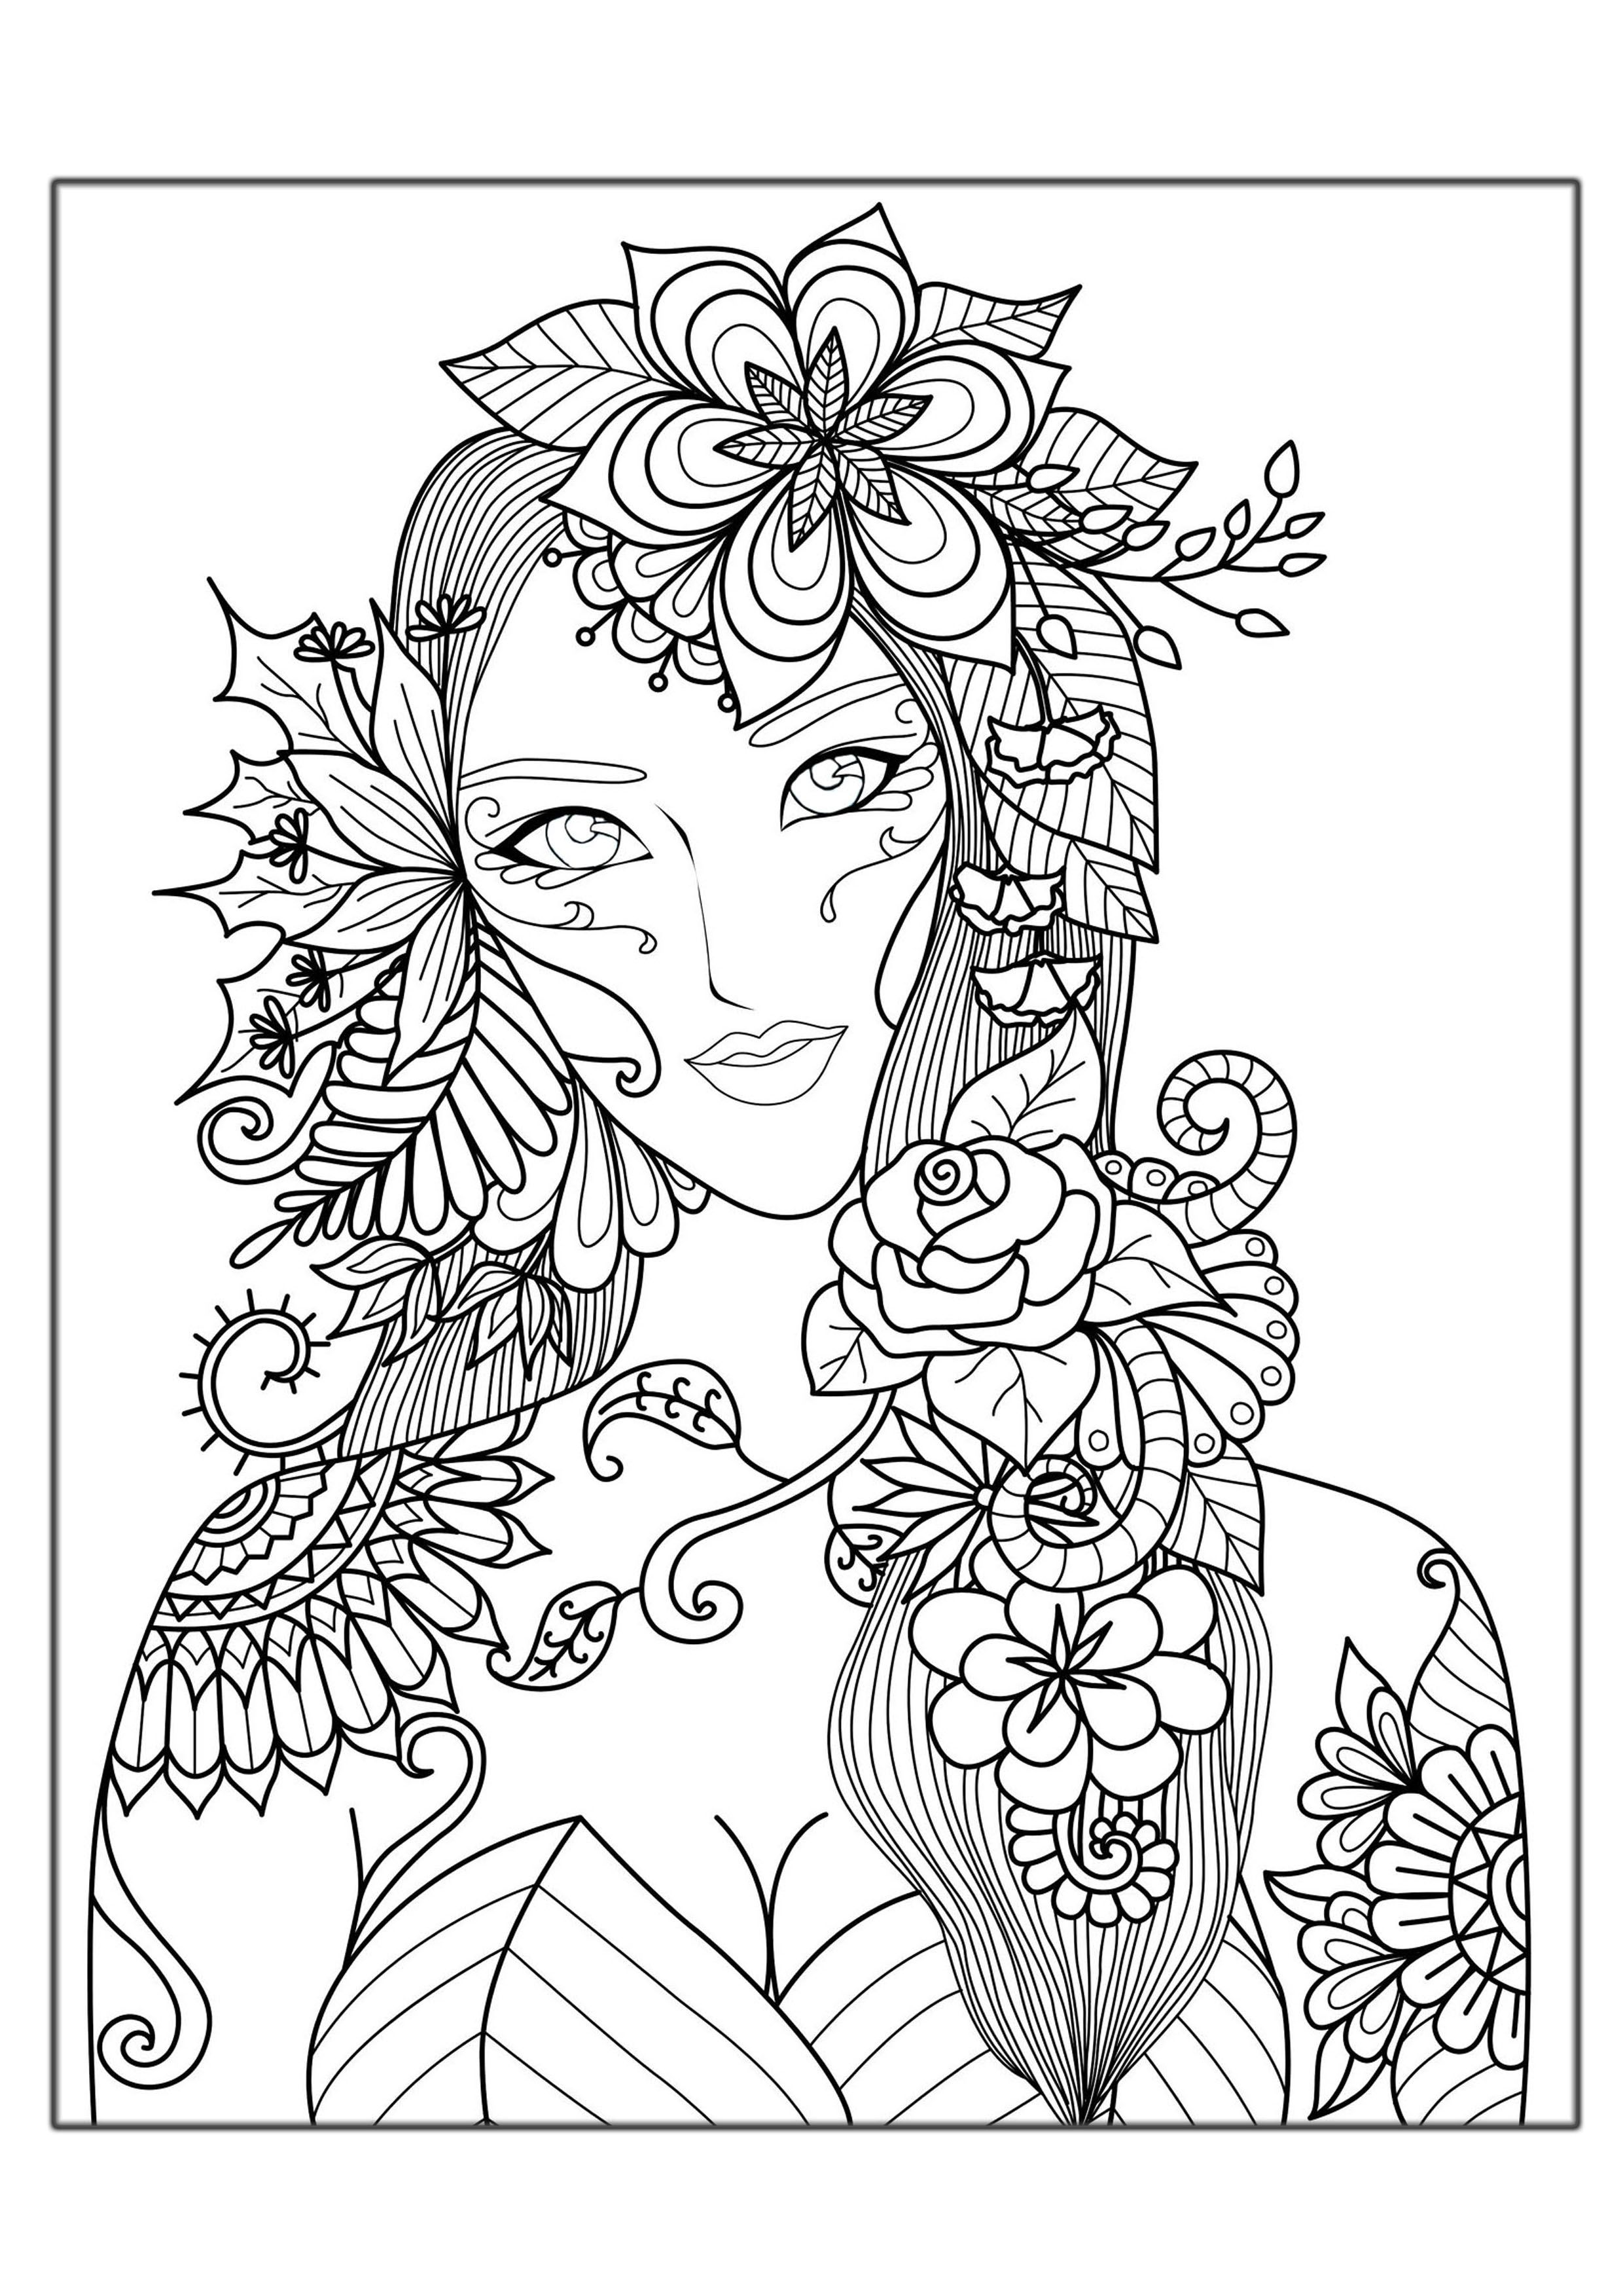 Pin On Zen And Anti Stress Coloring Pages